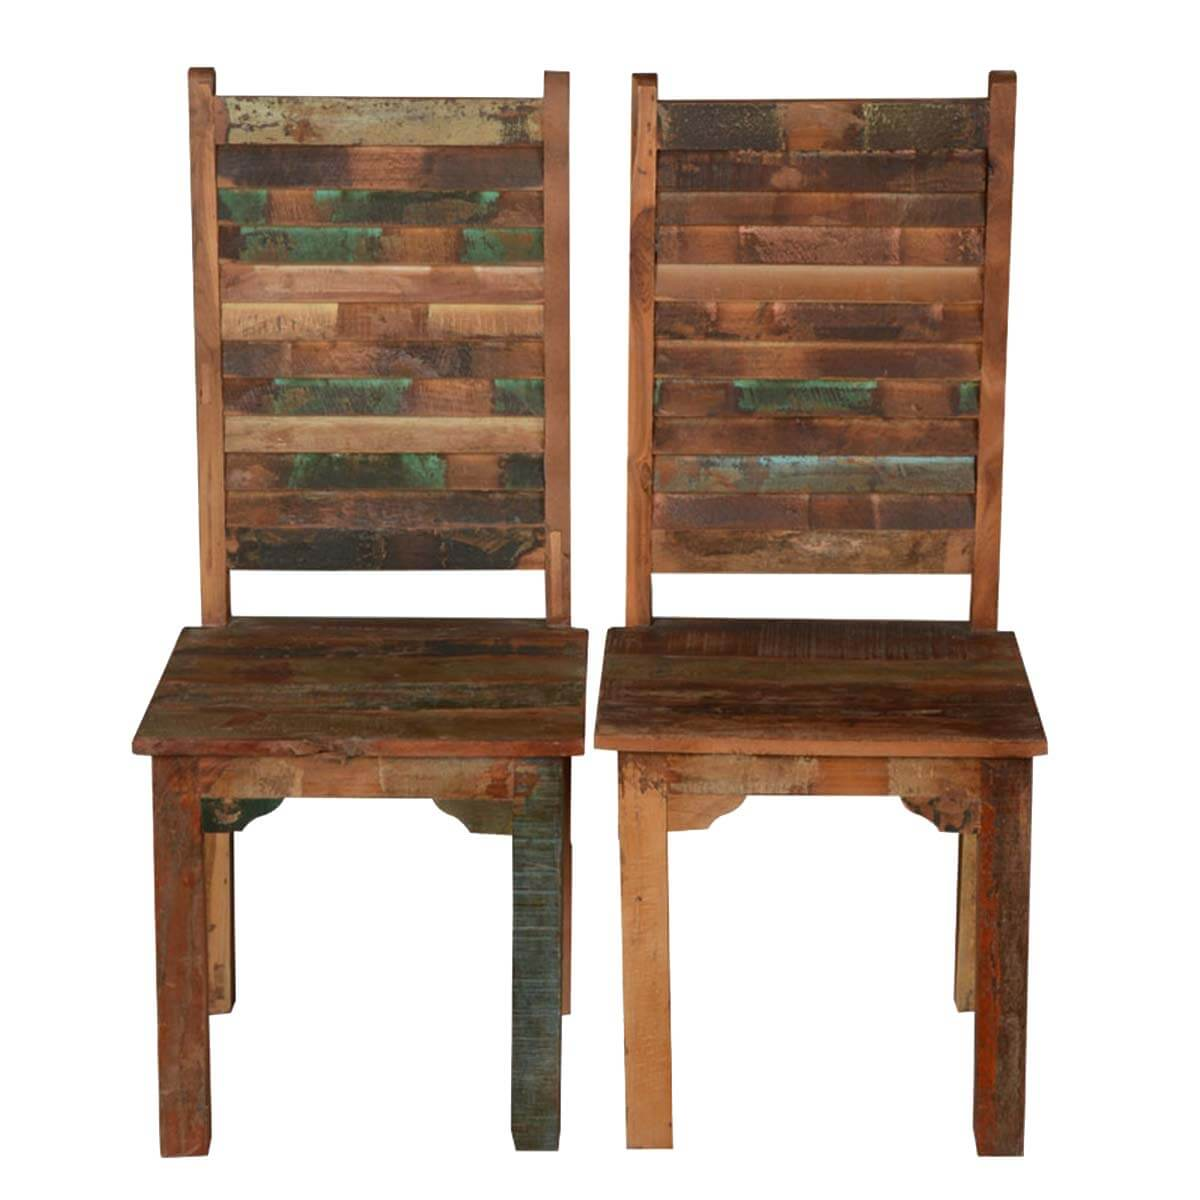 Marvelous Rustic Distressed Reclaimed Wood Multi Color Dining Chairs Set Of 2